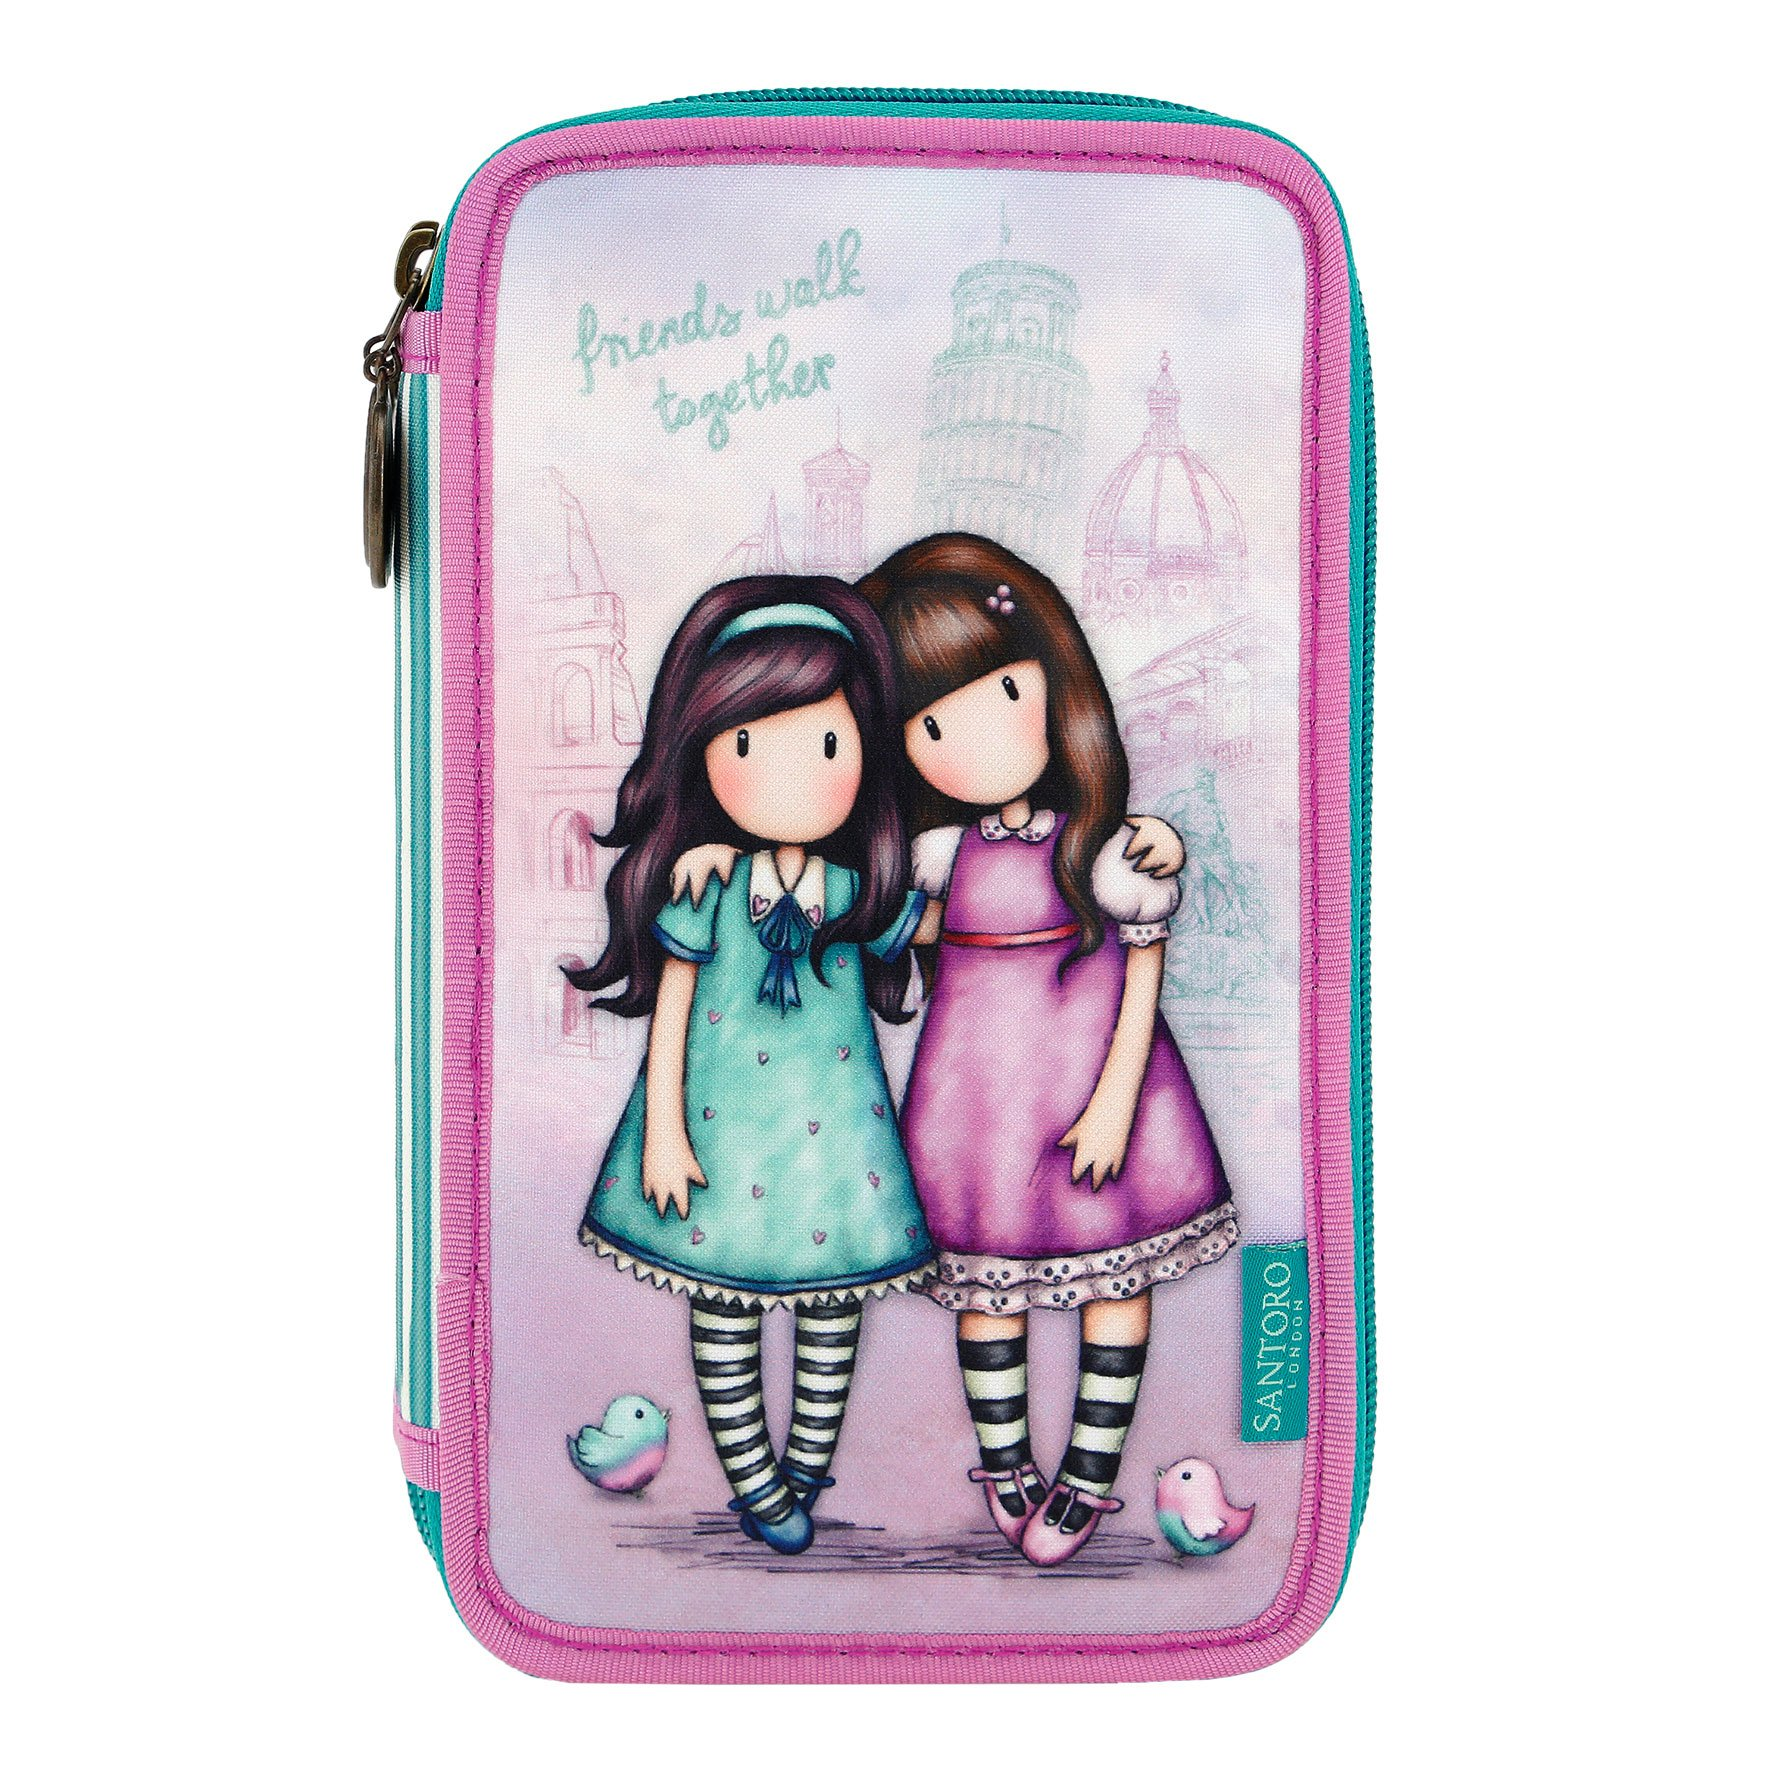 Gor-juss Estuche Plumier Triple Gorjuss - Friends Walk Together - -5% En Libros: Amazon.es: Hogar